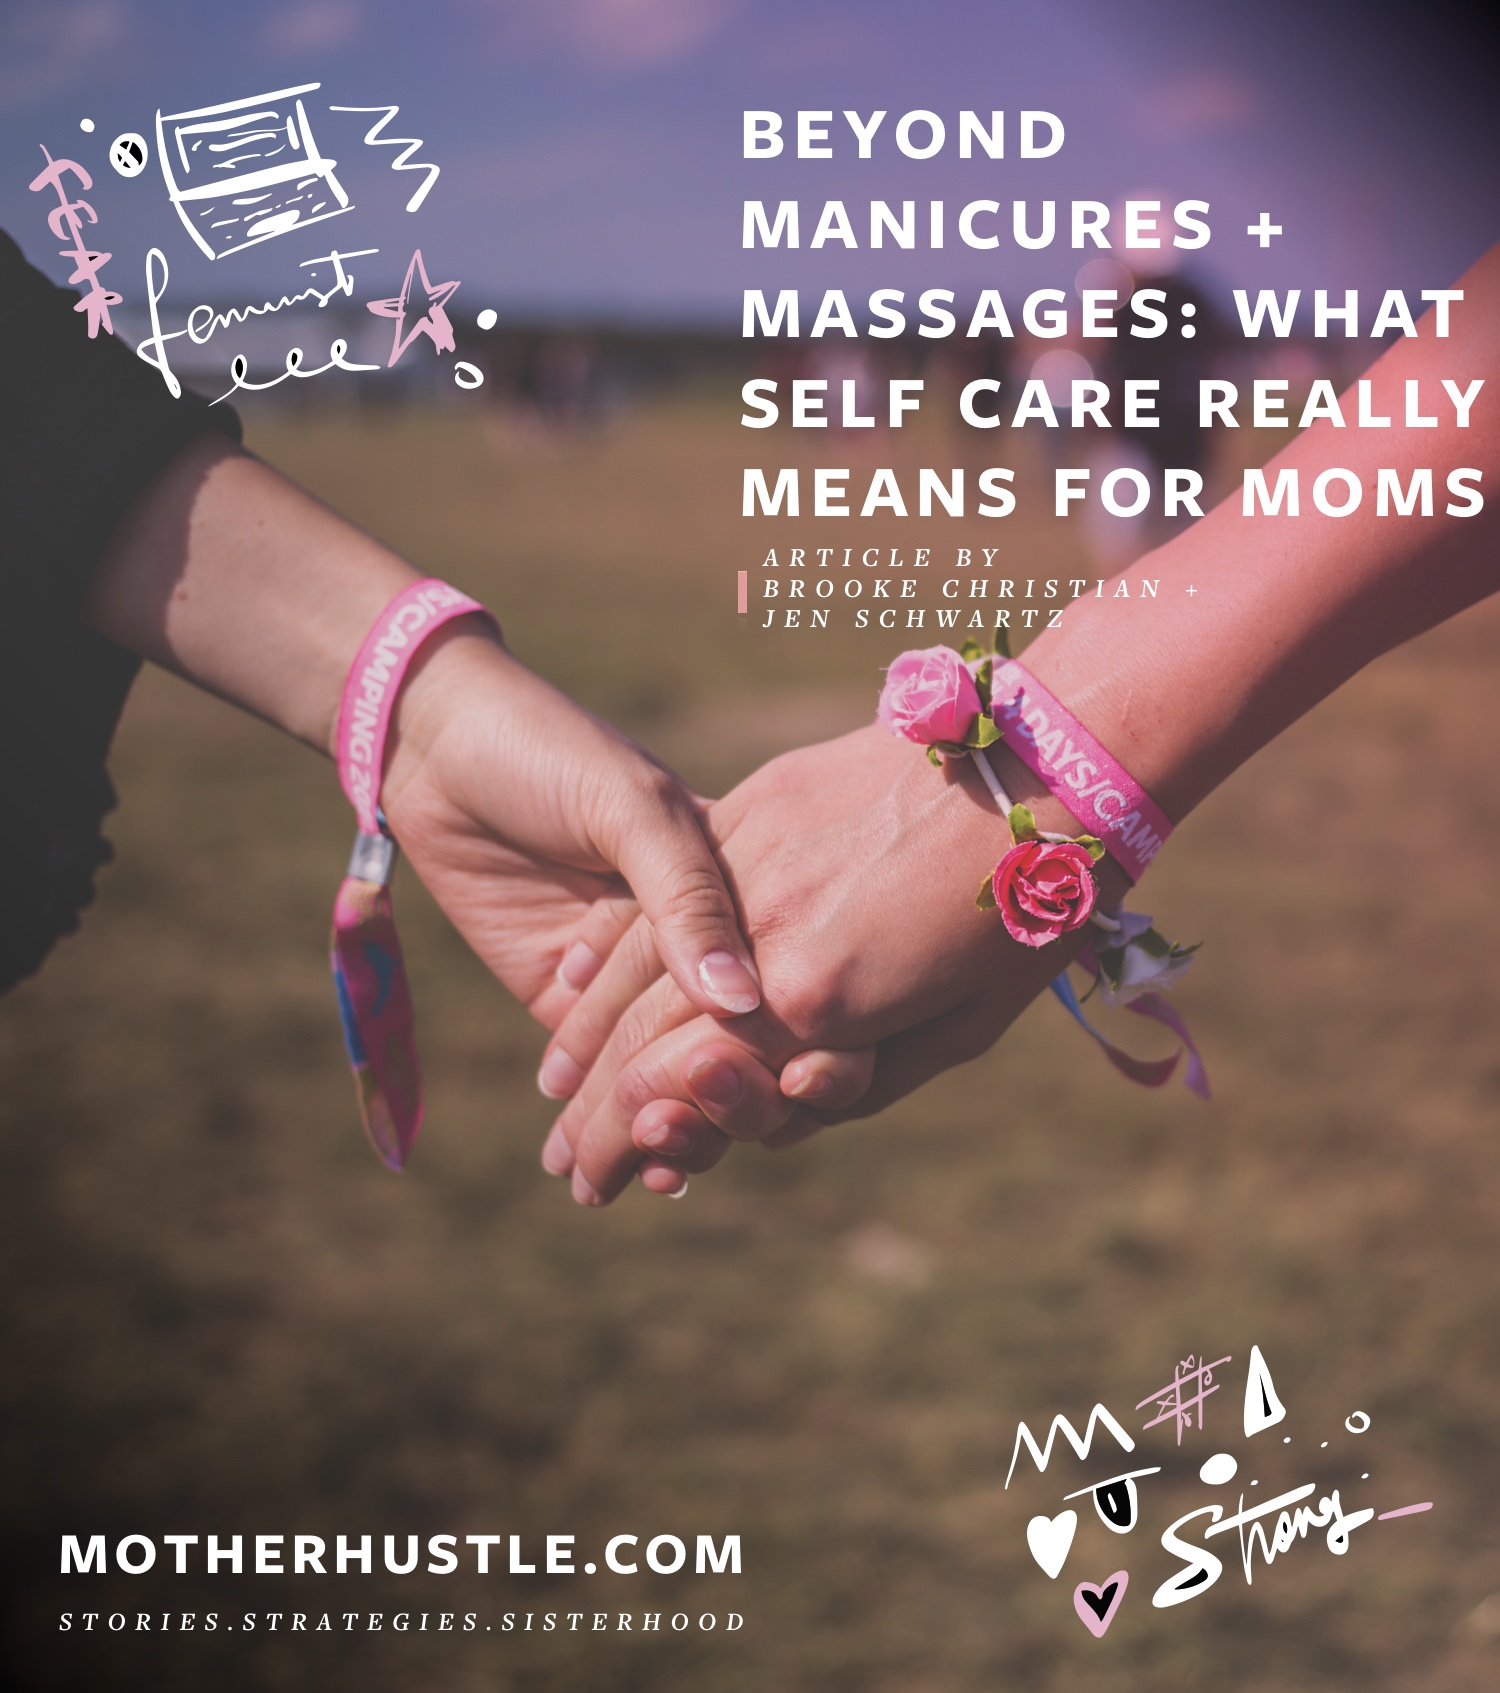 Beyond Manicures + Massages- What Self Care REALLY Means For Moms - by Brooke Christian + Jen Schwartz for MotherHustle